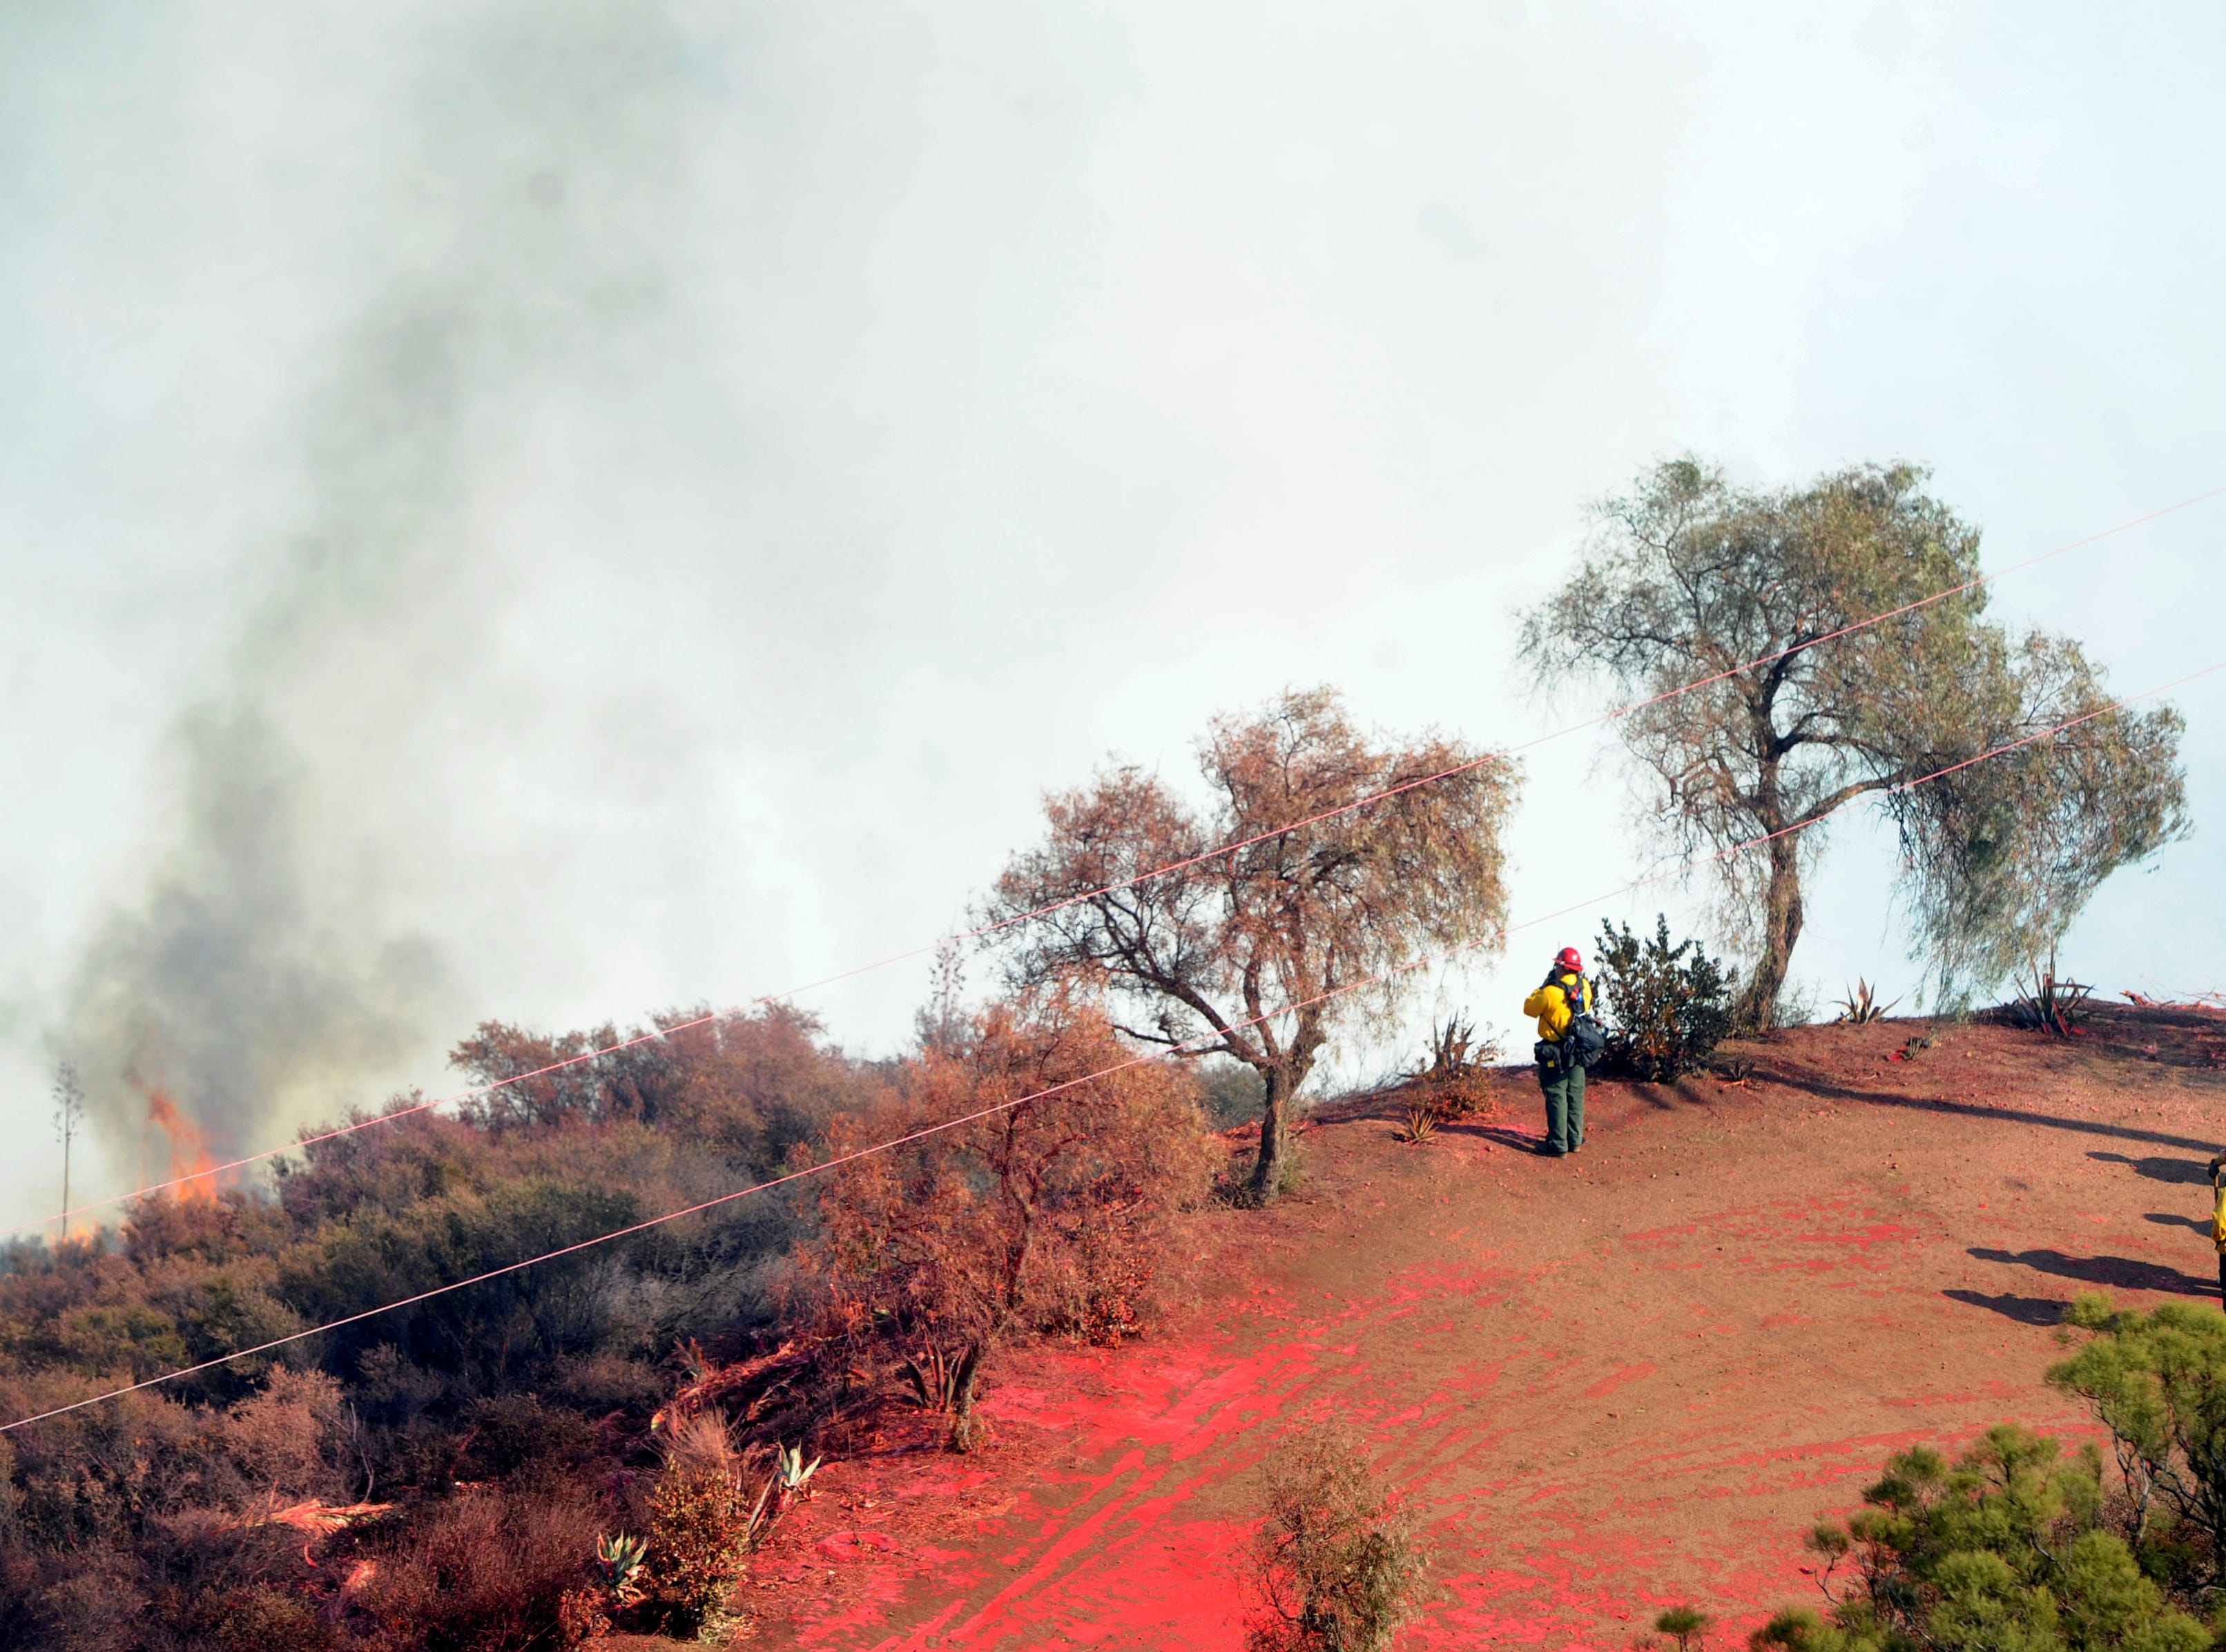 Firefighters watch the fire come up the mountain at Mipolomol and Cotharin roads in Ventura County. The Woolsey Fire continued to burn Saturday.